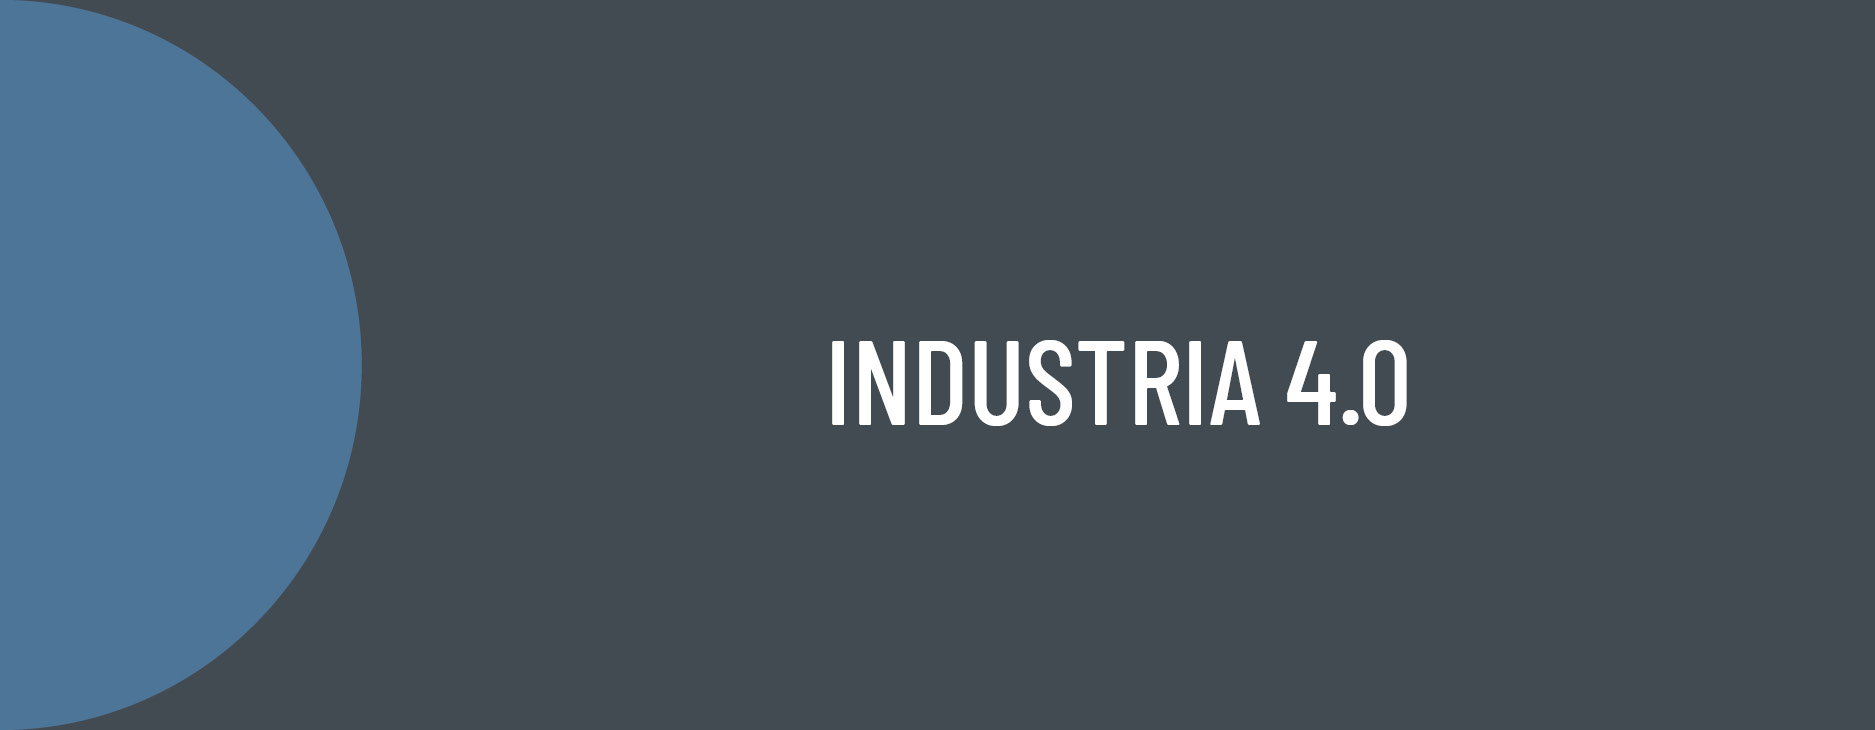 AIDIMME R&D lines: 4.0 Industry